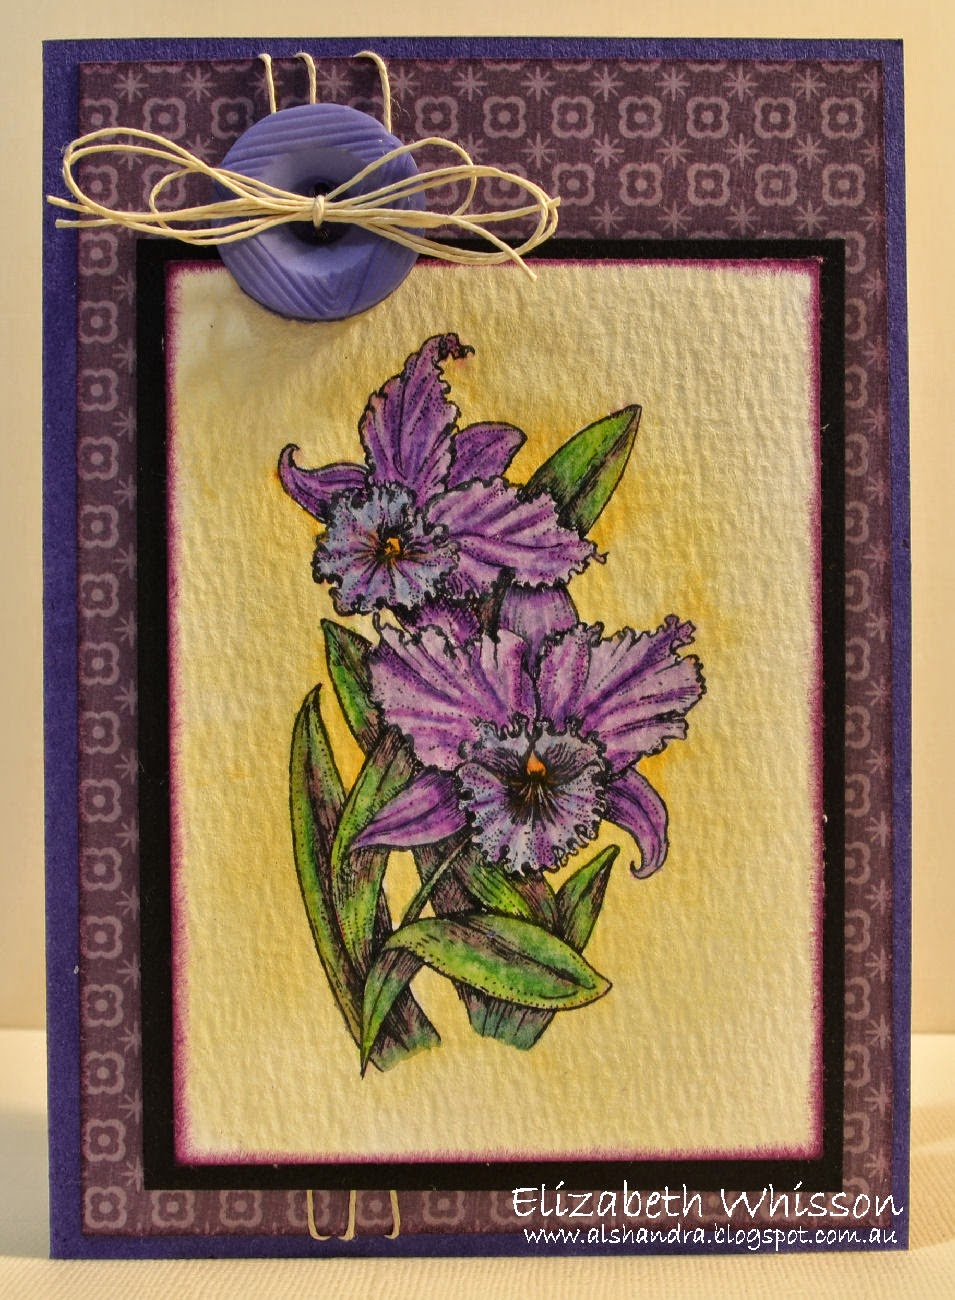 Elizabeth Whisson, Flourishes, Orchids, watercolour pencils, watercolor pencils, Rexel Derwent, handmade card